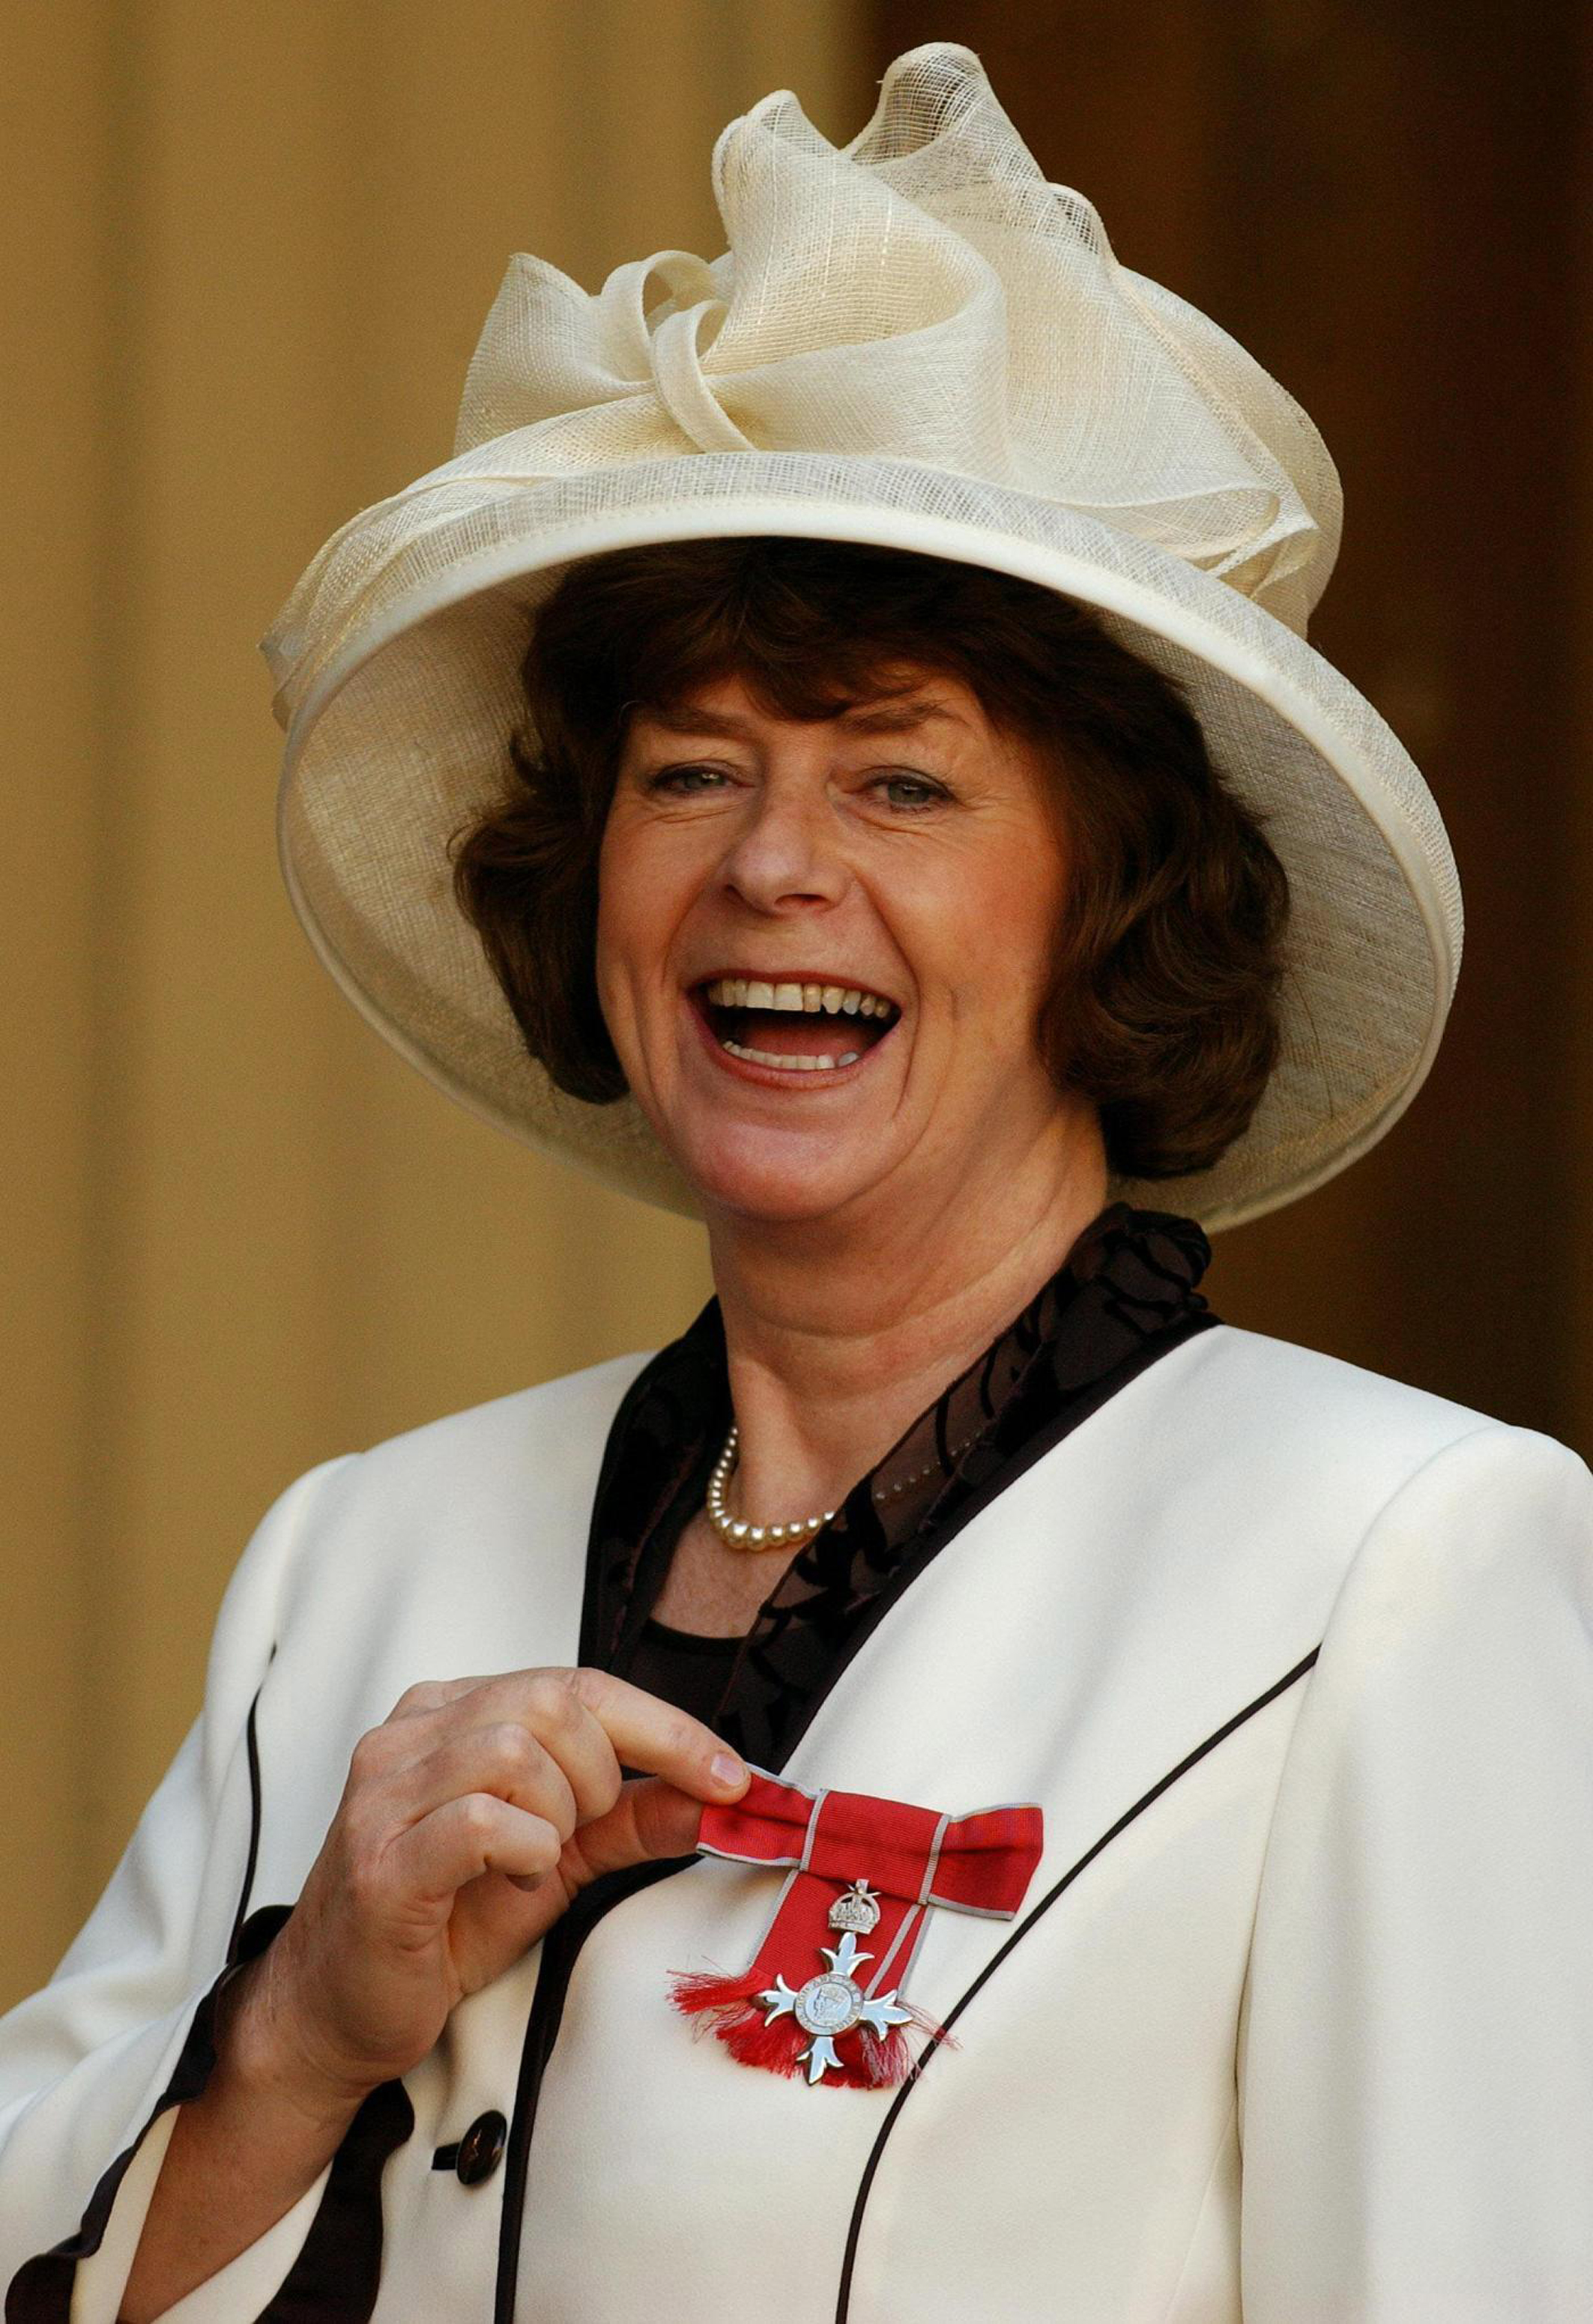 Poet Pam Ayres at Buckingham Palace, after collecting her MBE's for sevices to literature and entertainment from the Queen in 2004 (Fiona Hanson/PA)